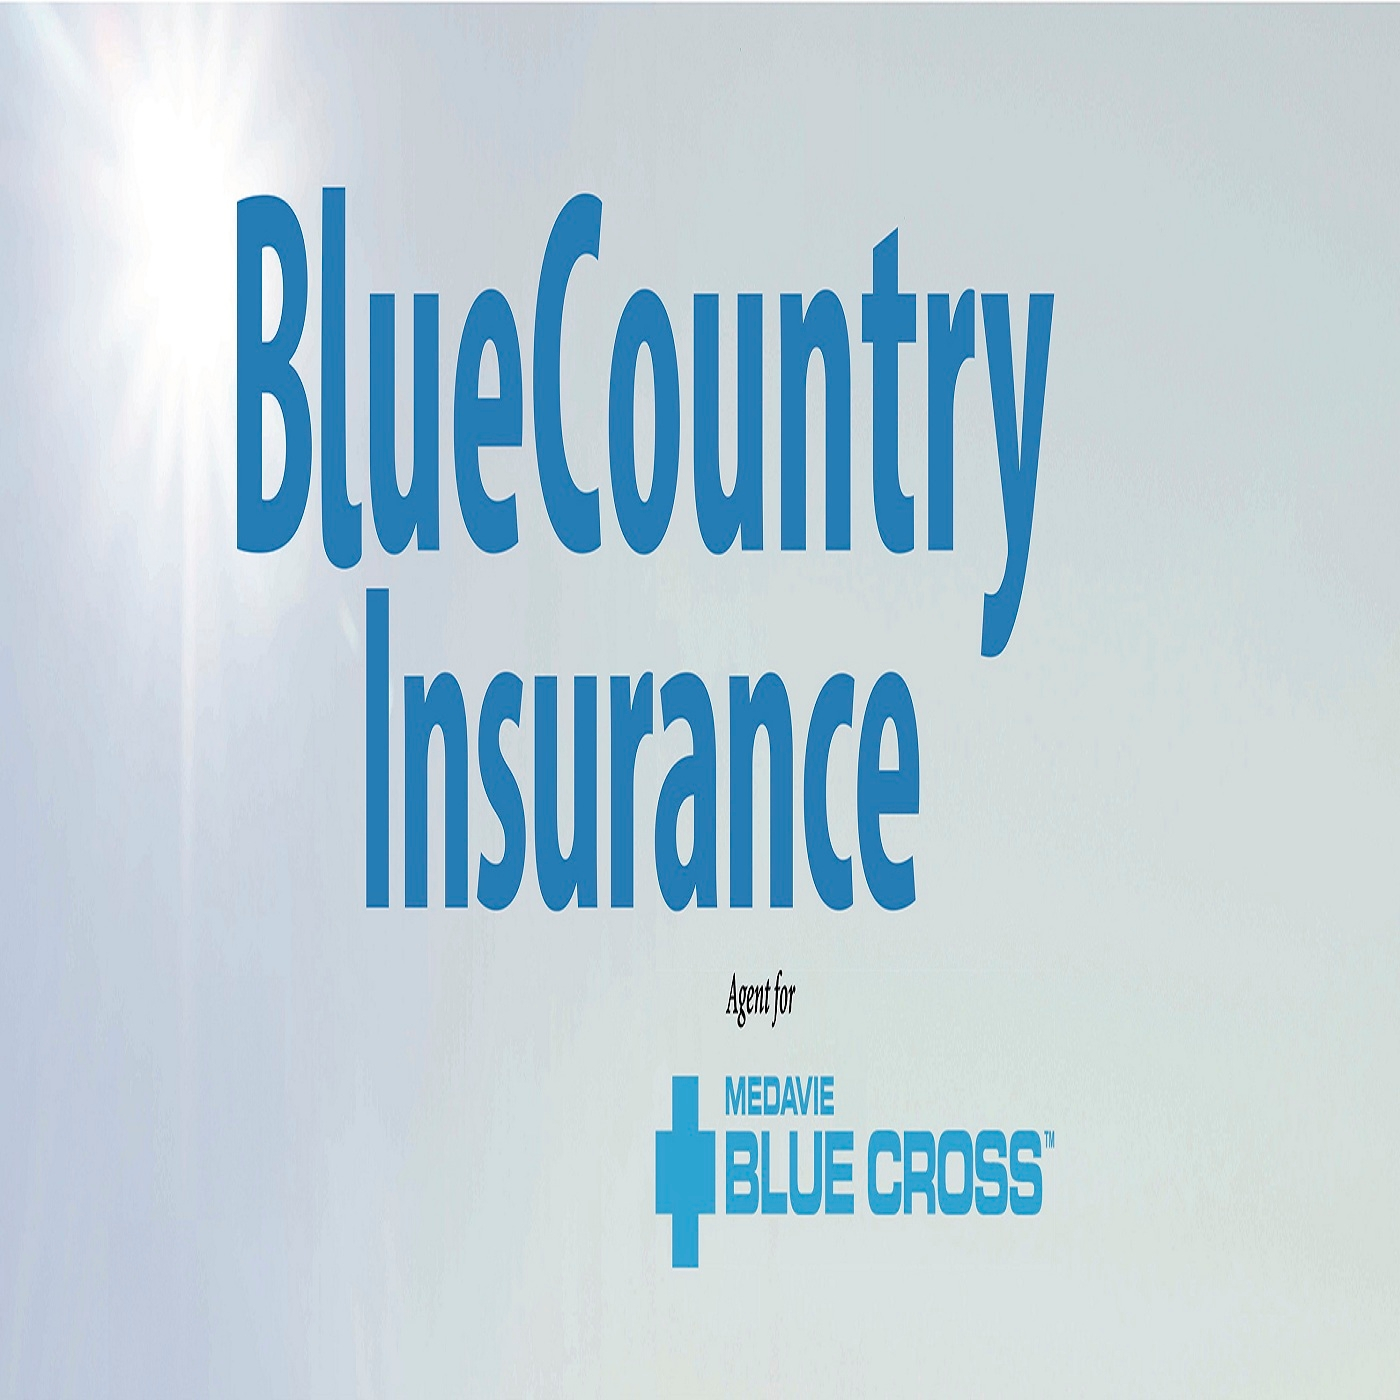 Blue Country Insurance, Inc. (@bluecrossmoncton) Cover Image